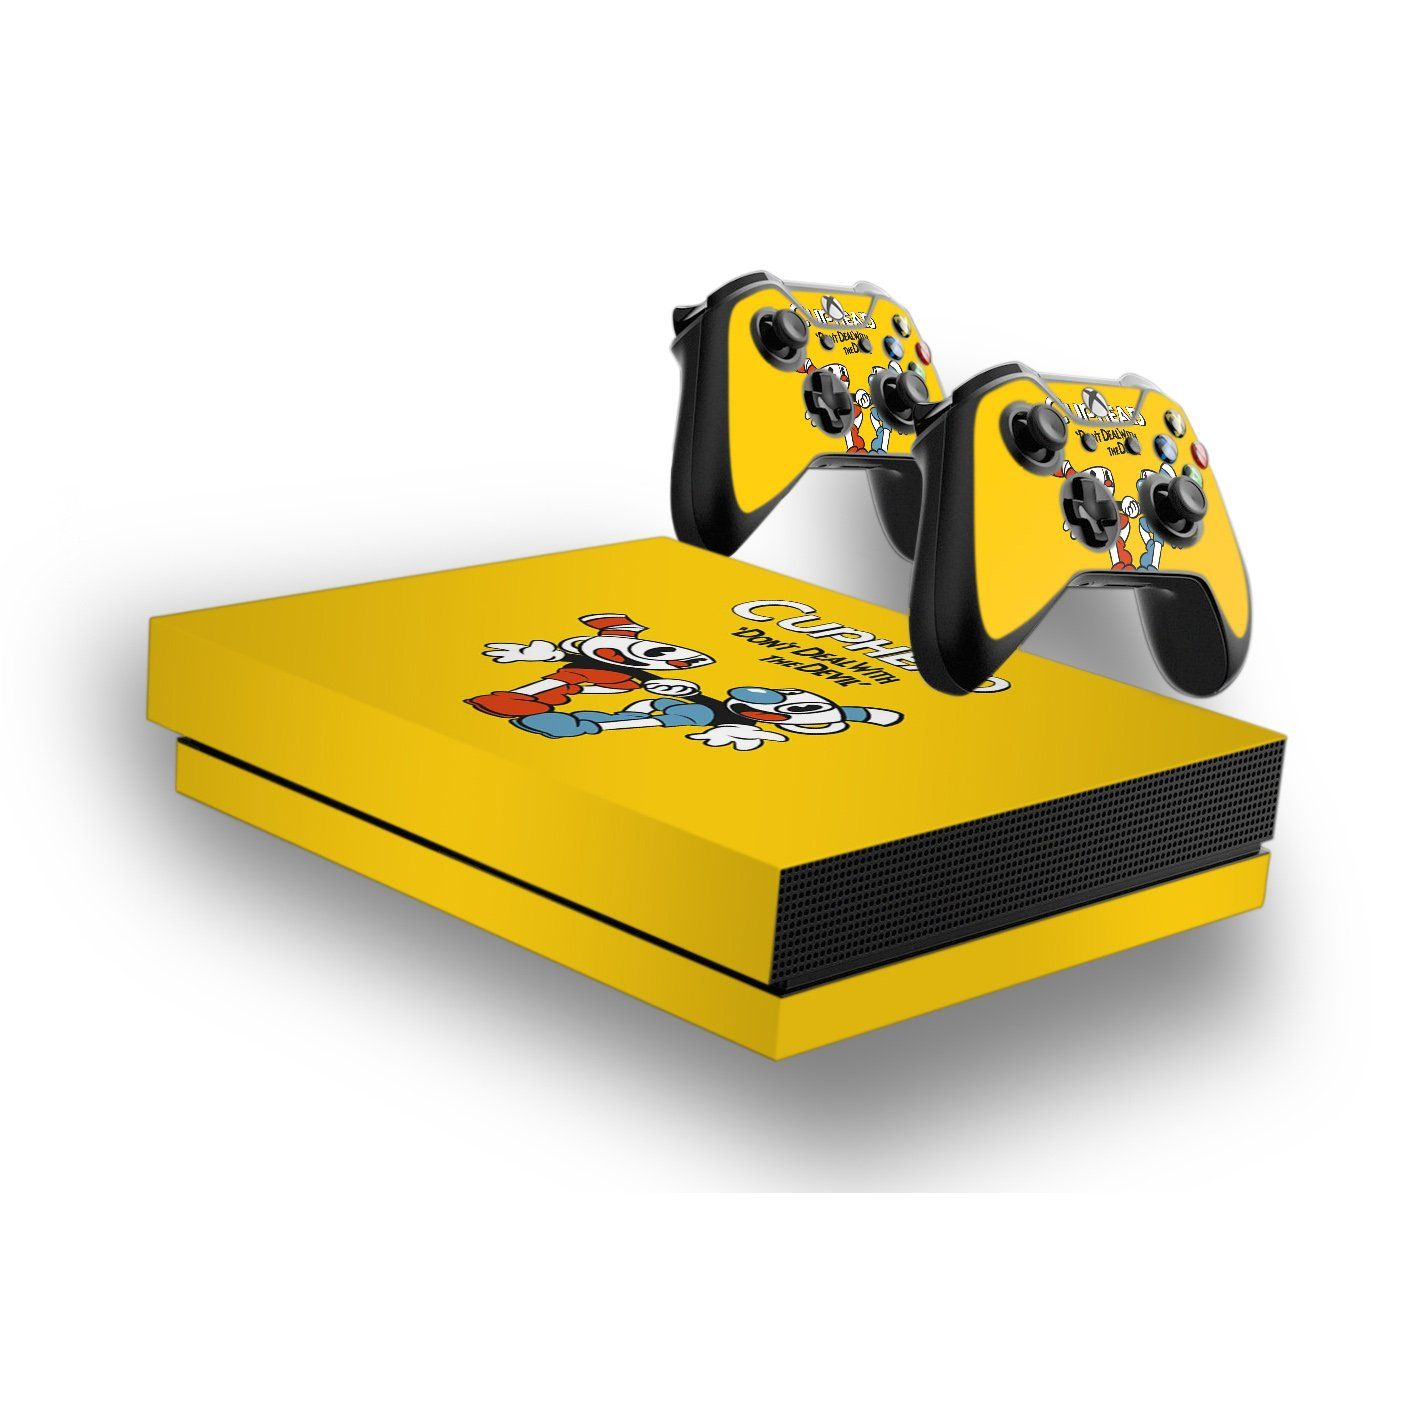 Video Games & Consoles Xbox One X Fifa 18 Skin Sticker Console Decal Vinyl Xbox Controller Video Game Accessories